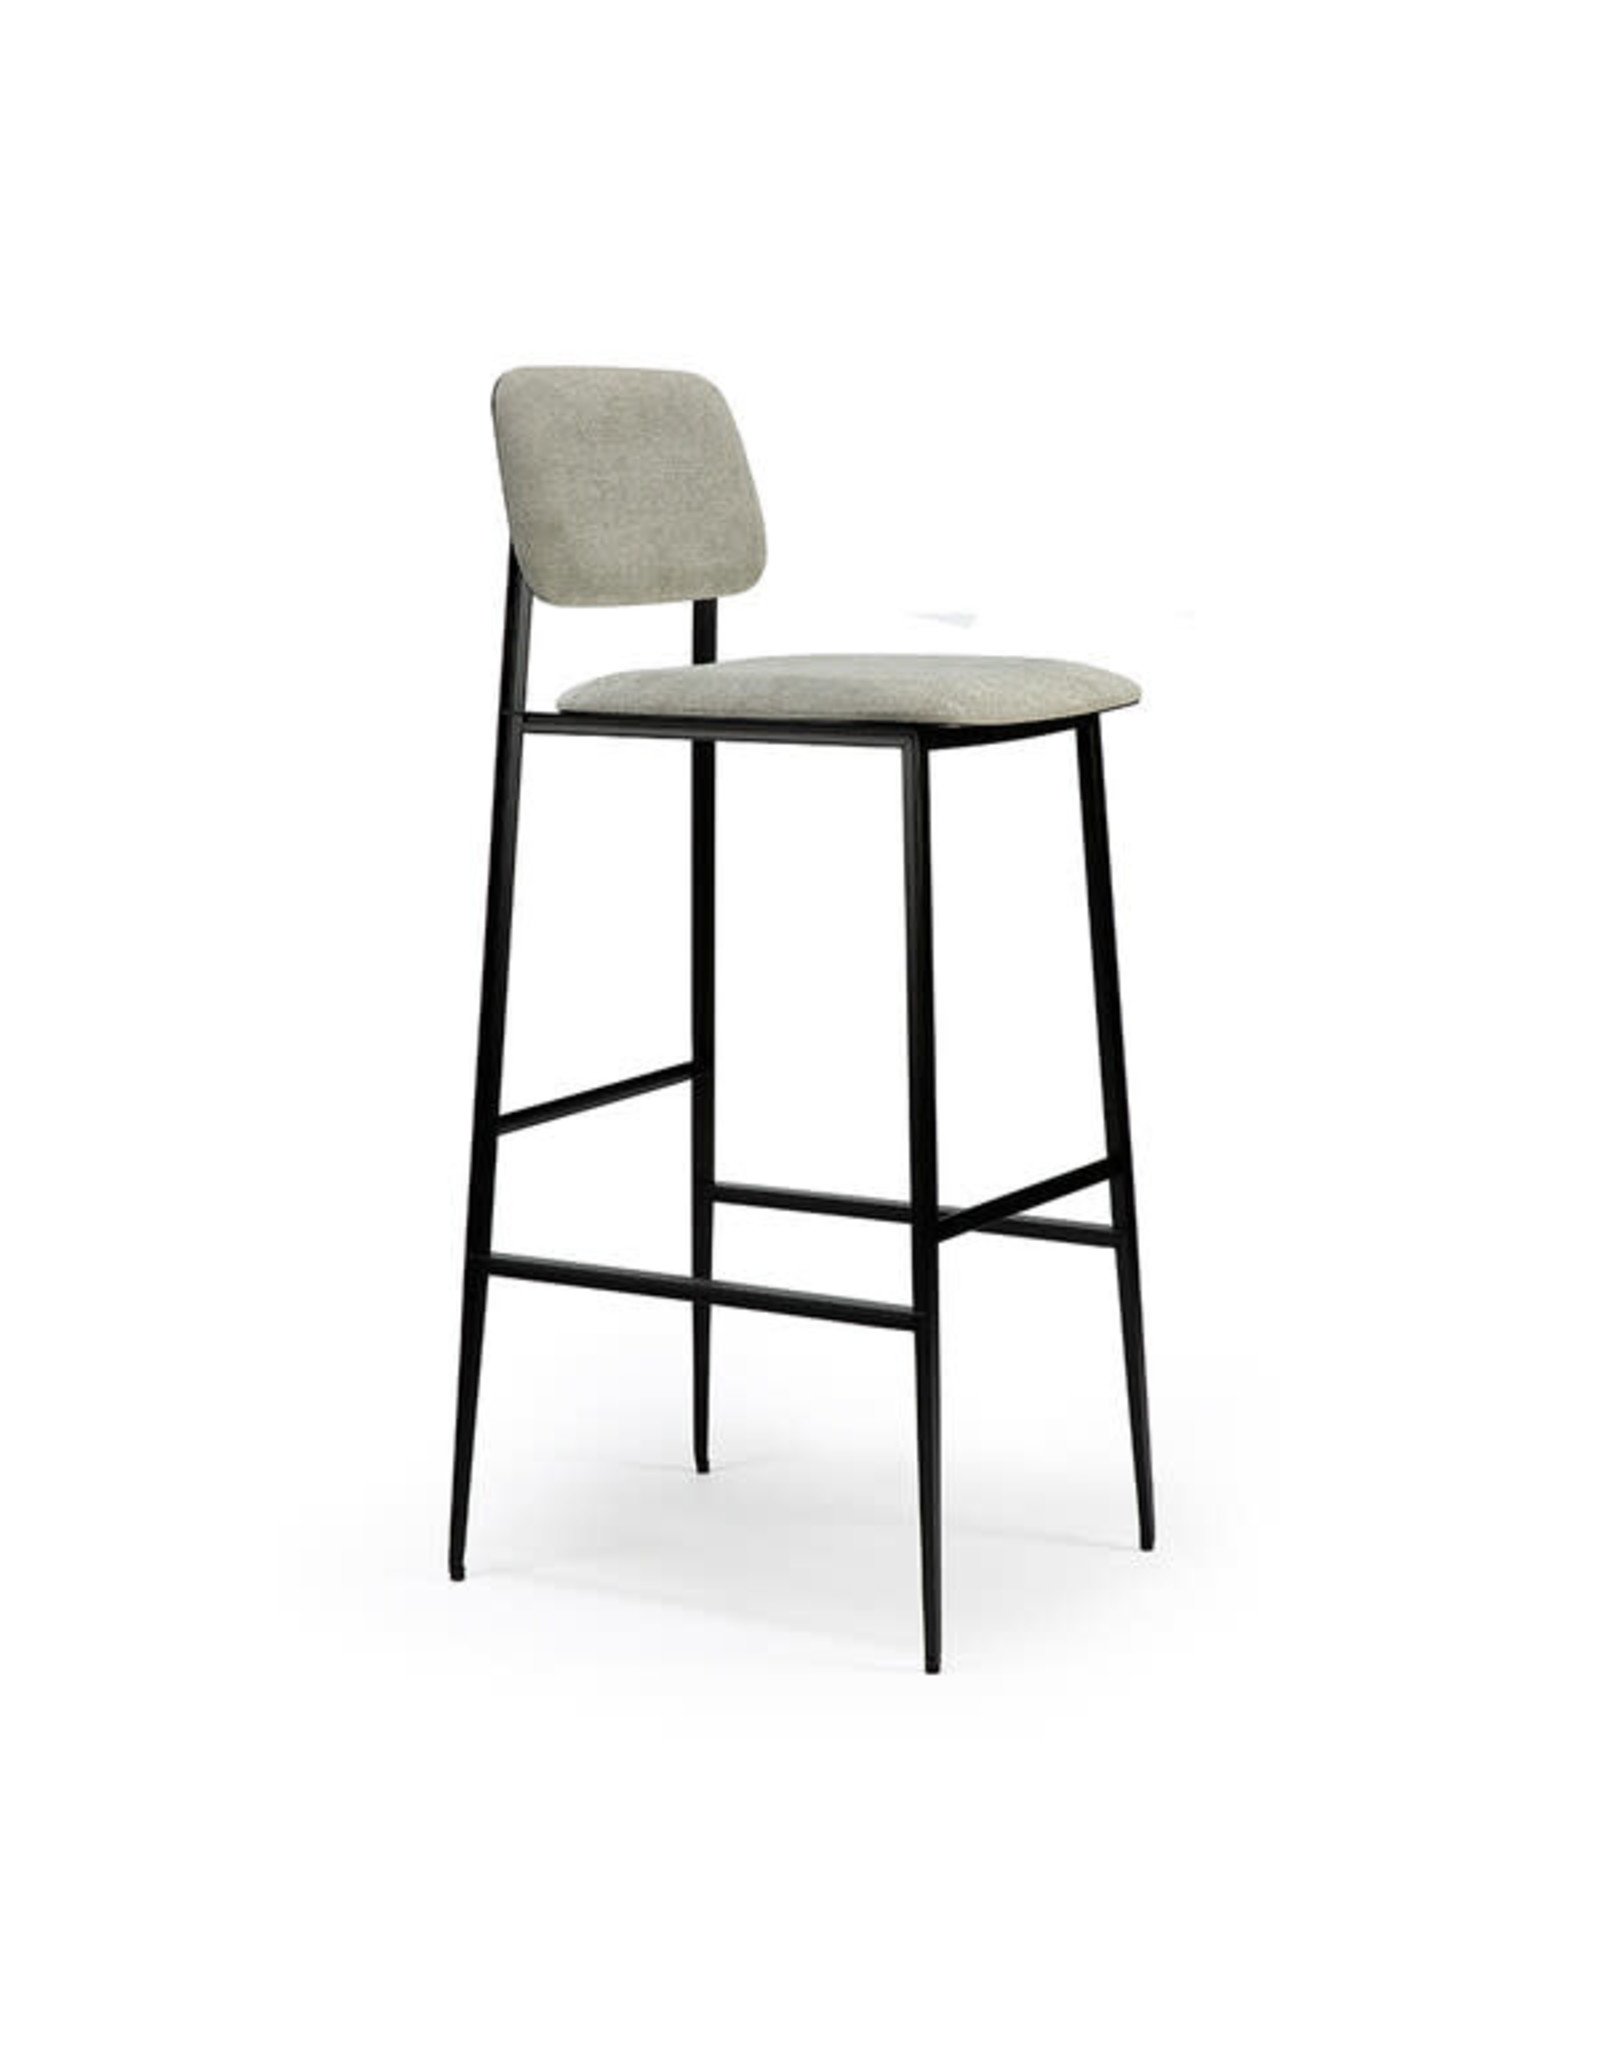 Ethnicraft DC bar stool - light grey